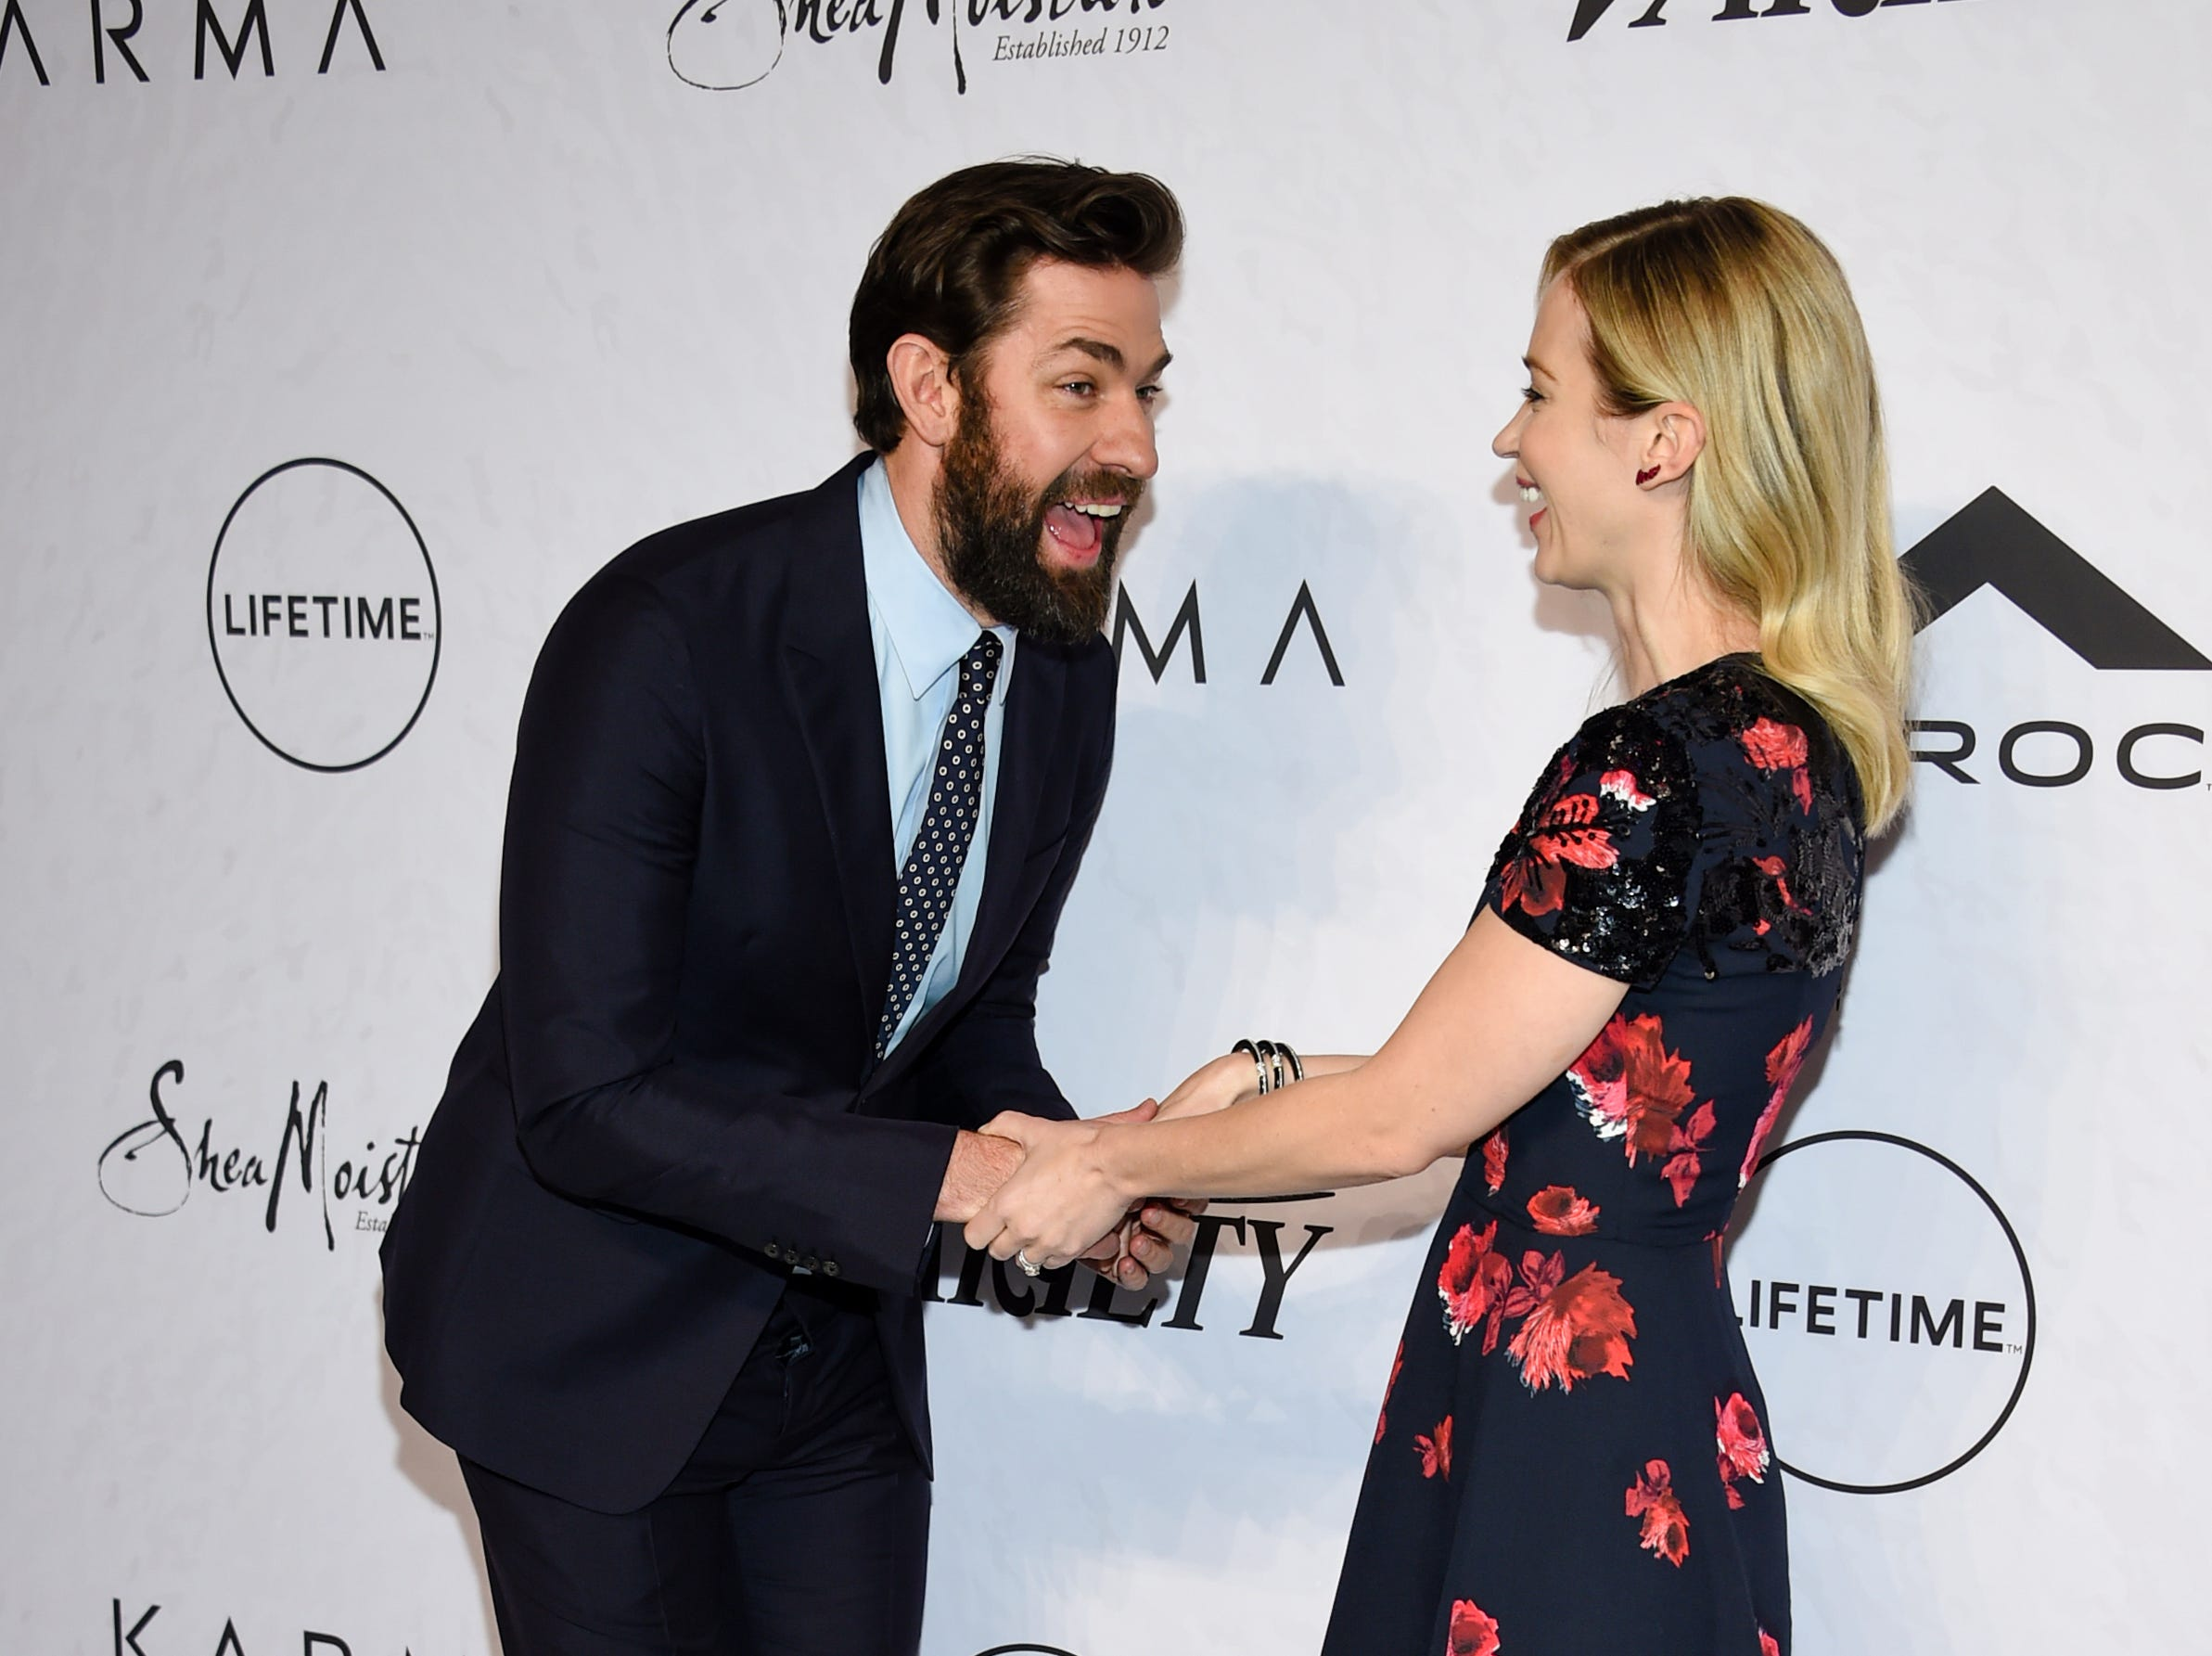 April 13: Actor/director John Krasinski and his wife, honoree Emily Blunt, attend Variety's Power of Women: New York event in New York.